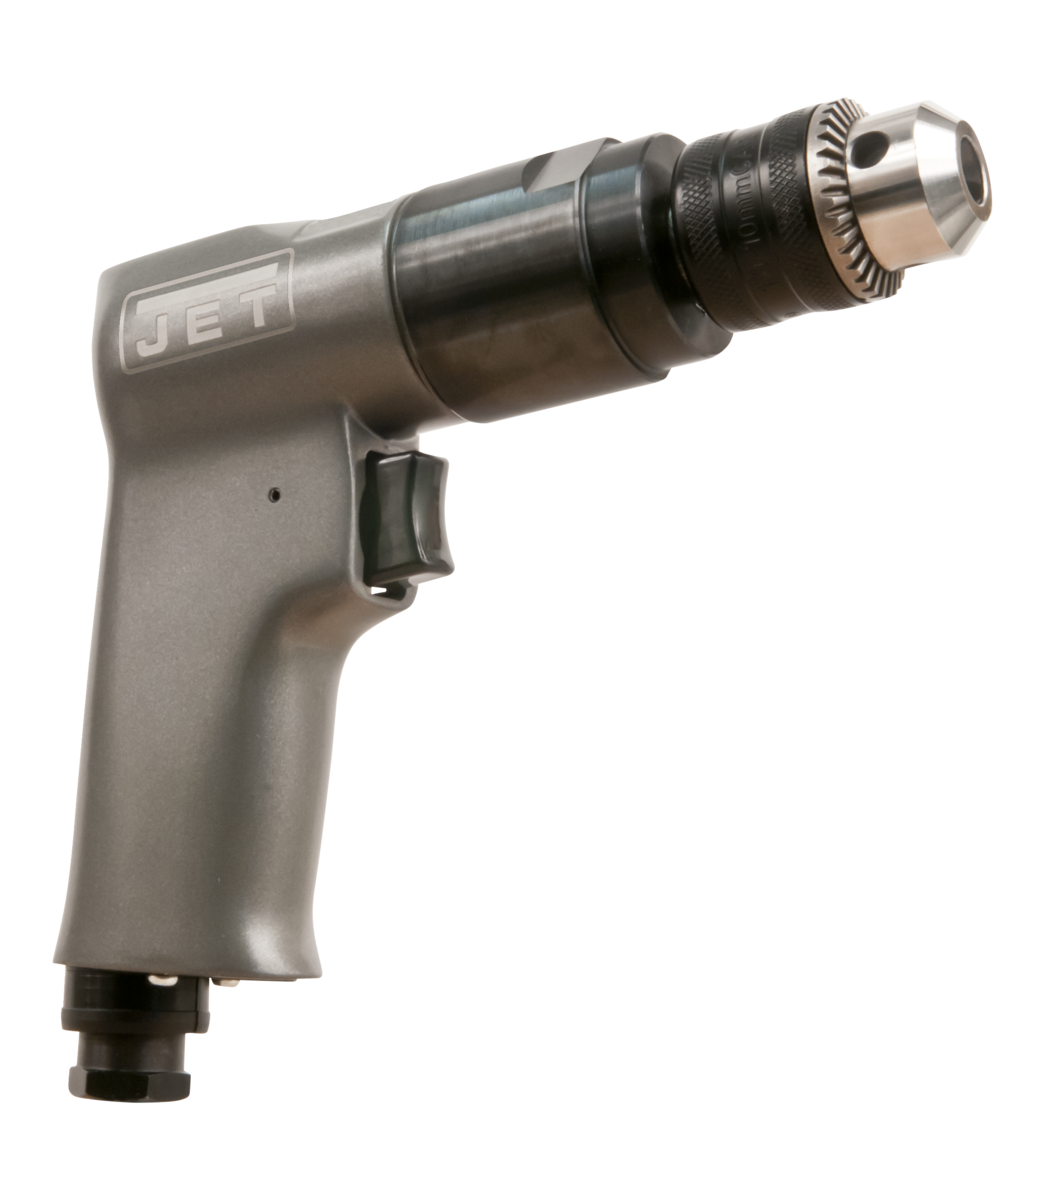 "JAT-600, 3/8"" Reversible Air Drill"